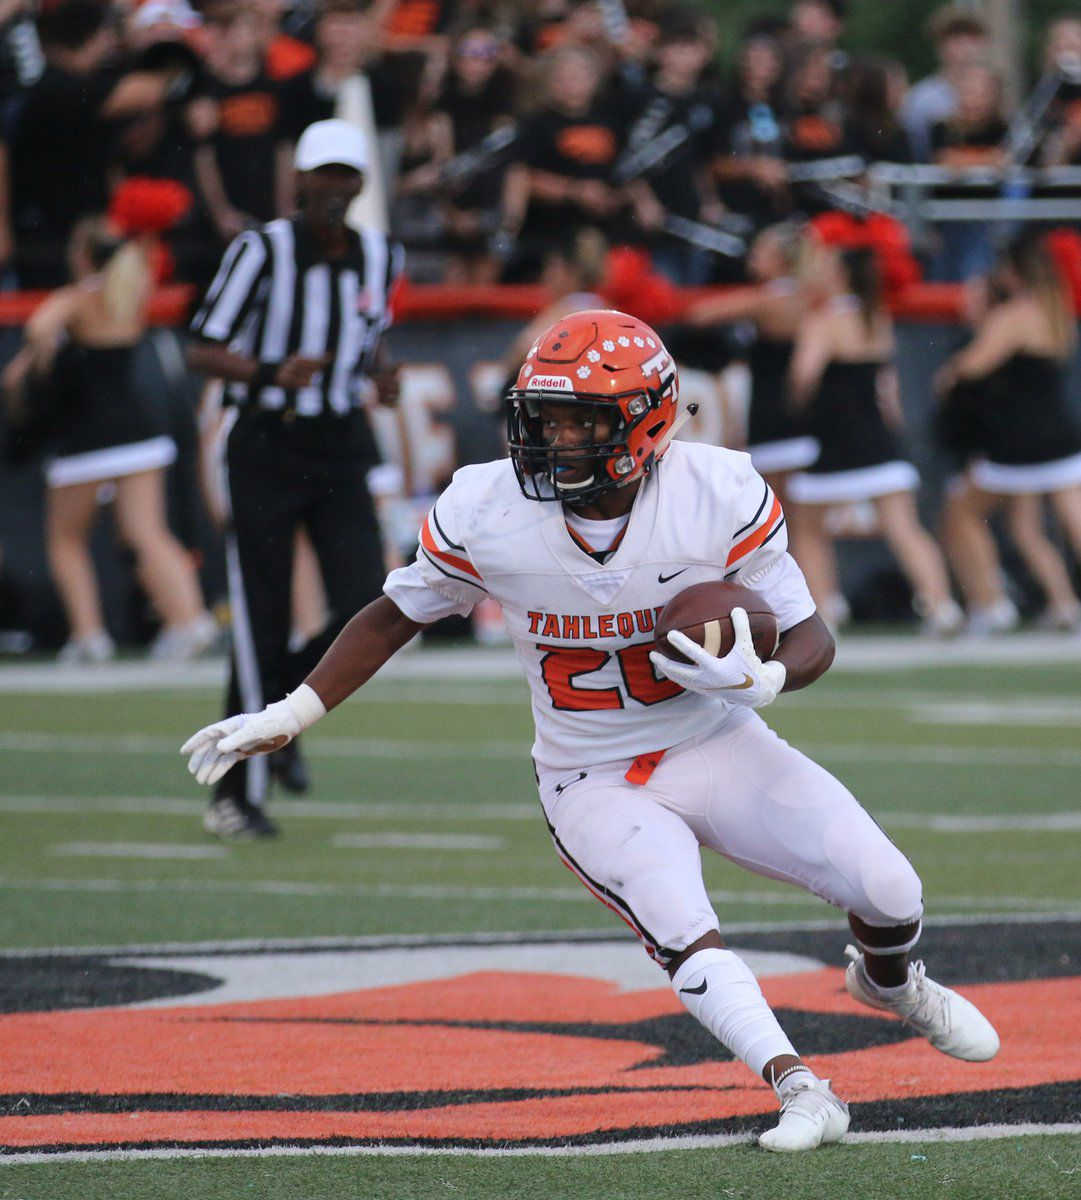 Stingy defense carries Tahlequah past Coweta